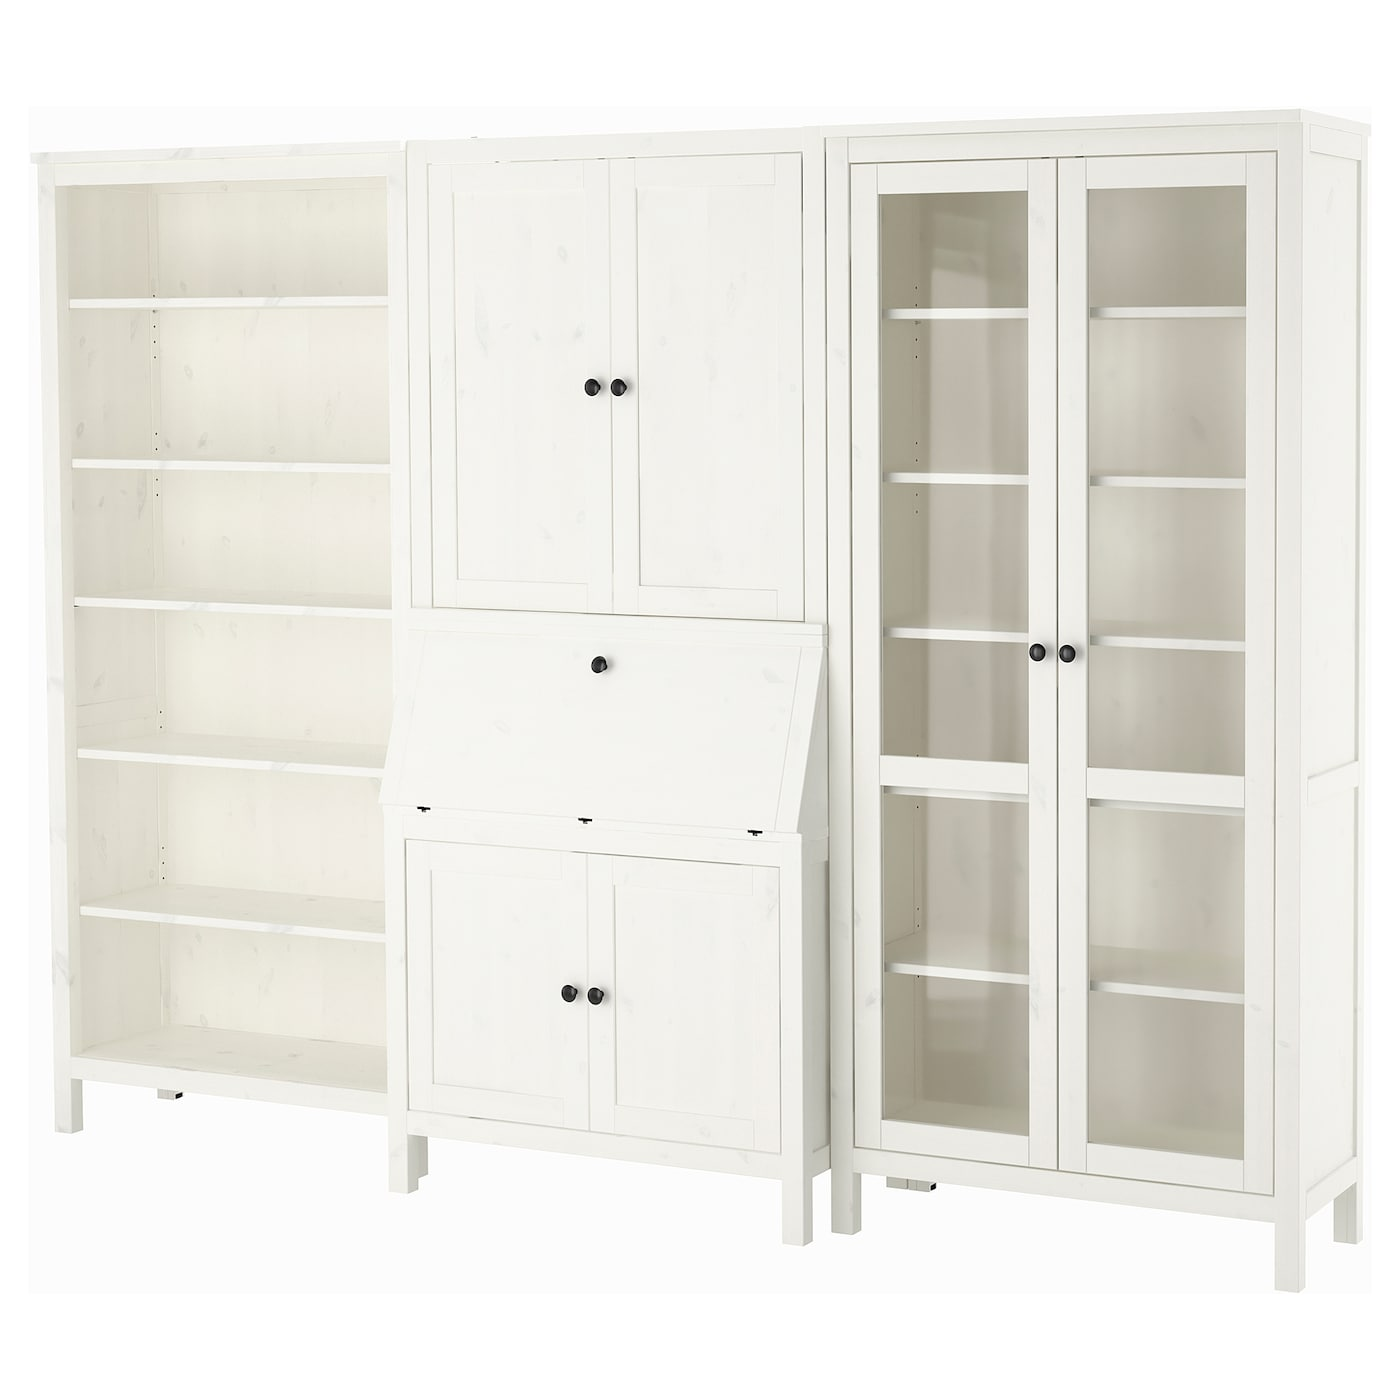 hemnes bureau with add on unit bookcase white stained glass 269 x 198 cm ikea. Black Bedroom Furniture Sets. Home Design Ideas